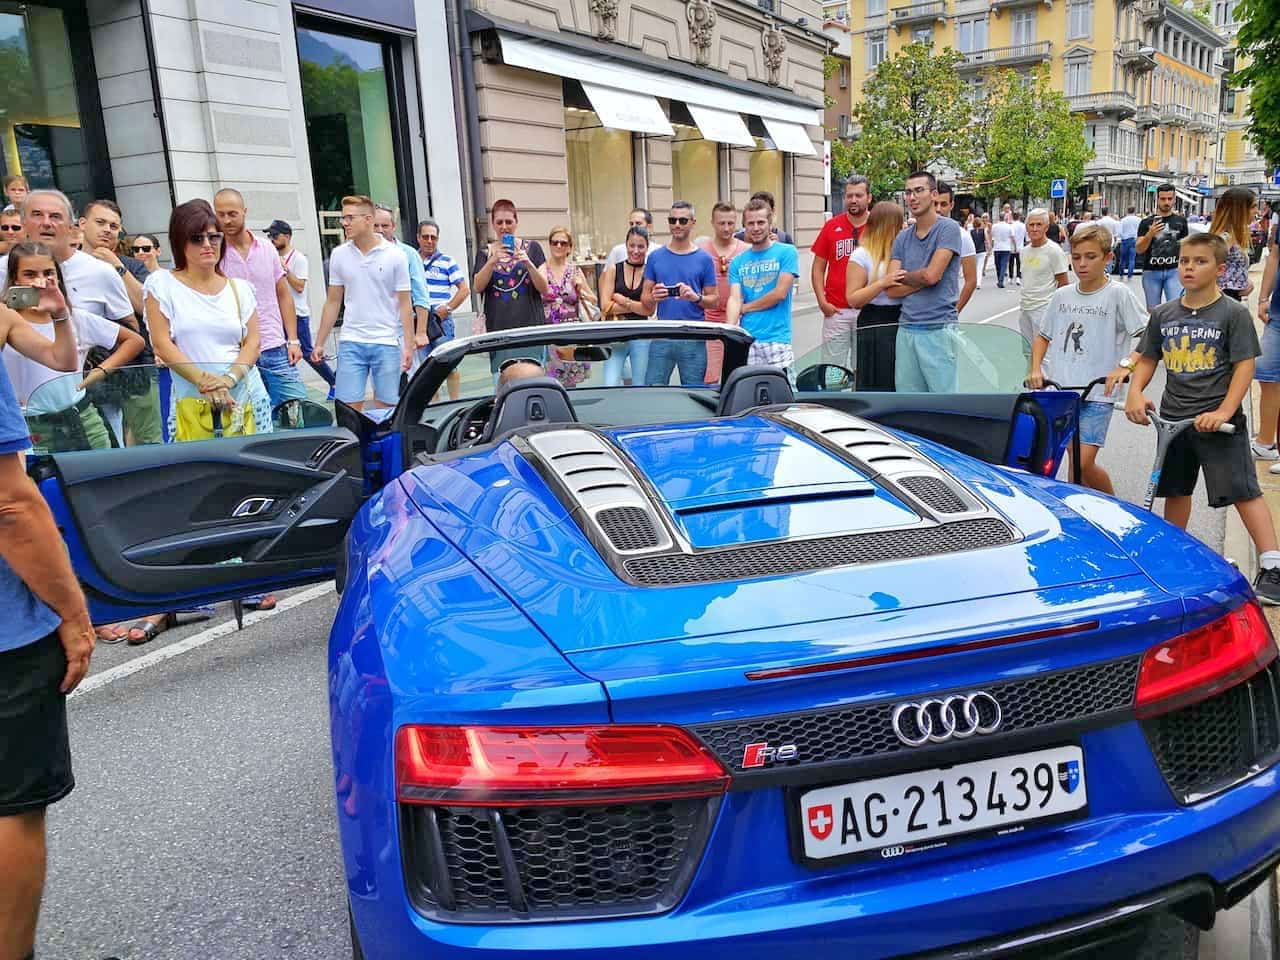 Cars And Coffee With The Audi R Spyder A Gentlemans World - Audi car events